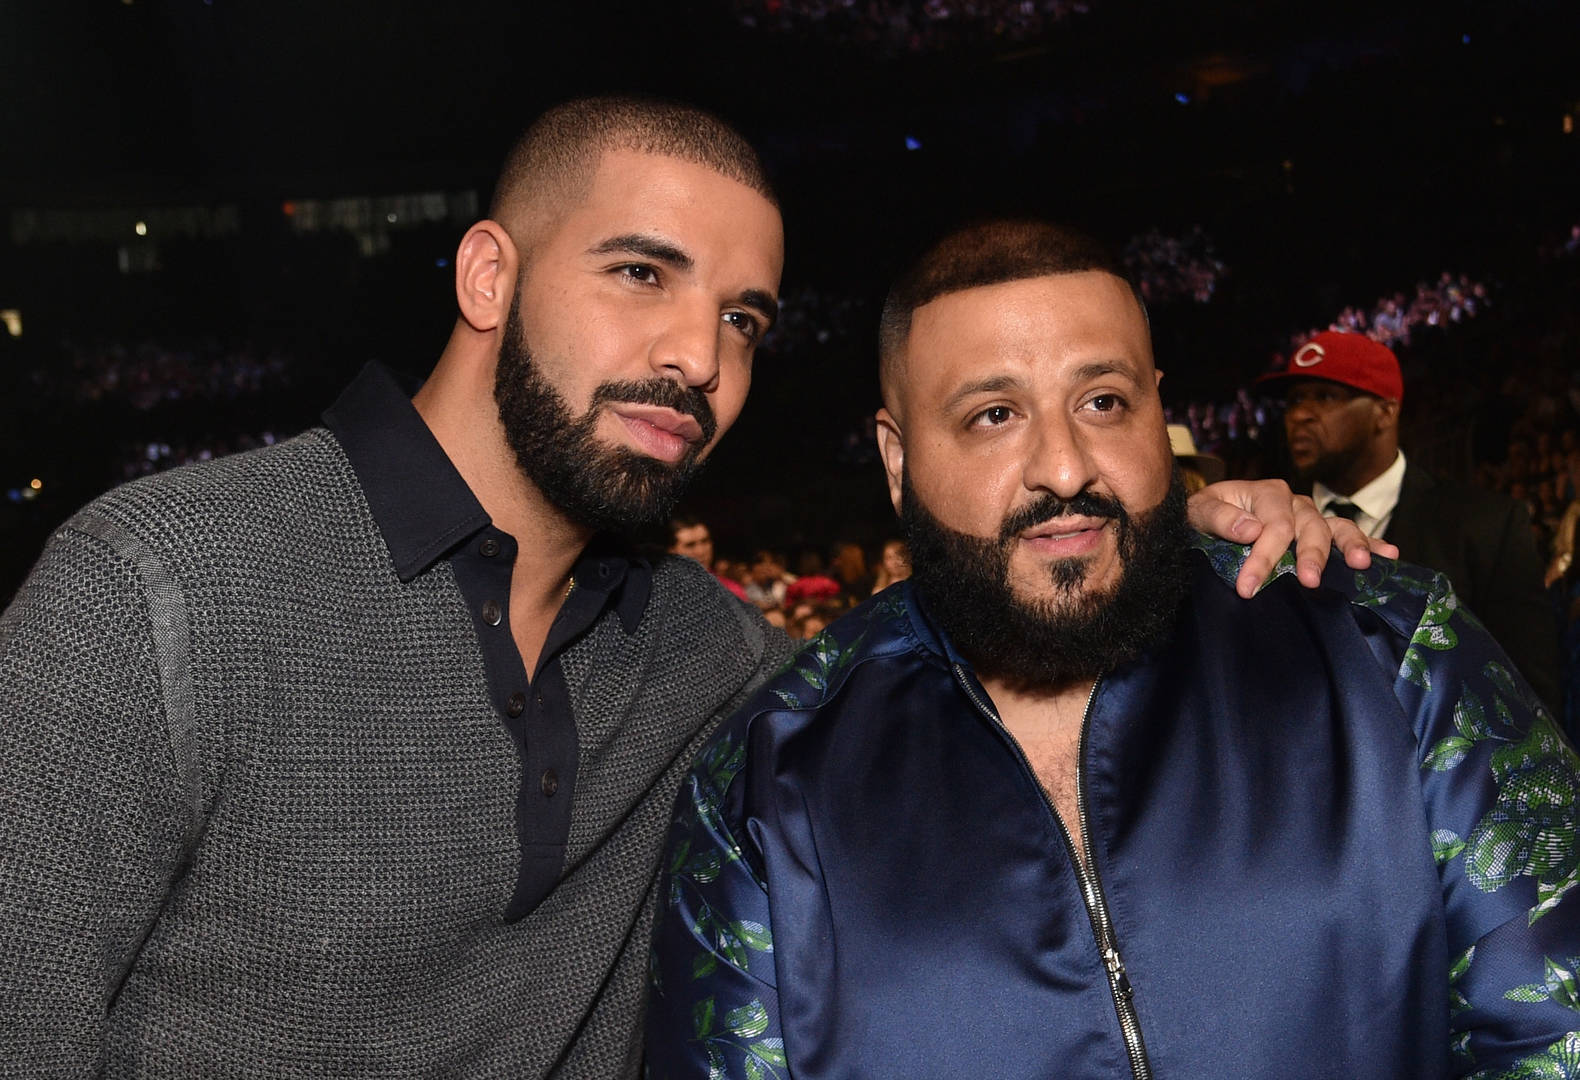 Drake & DJ Khaled Post Up With Matching Beards & Gazes